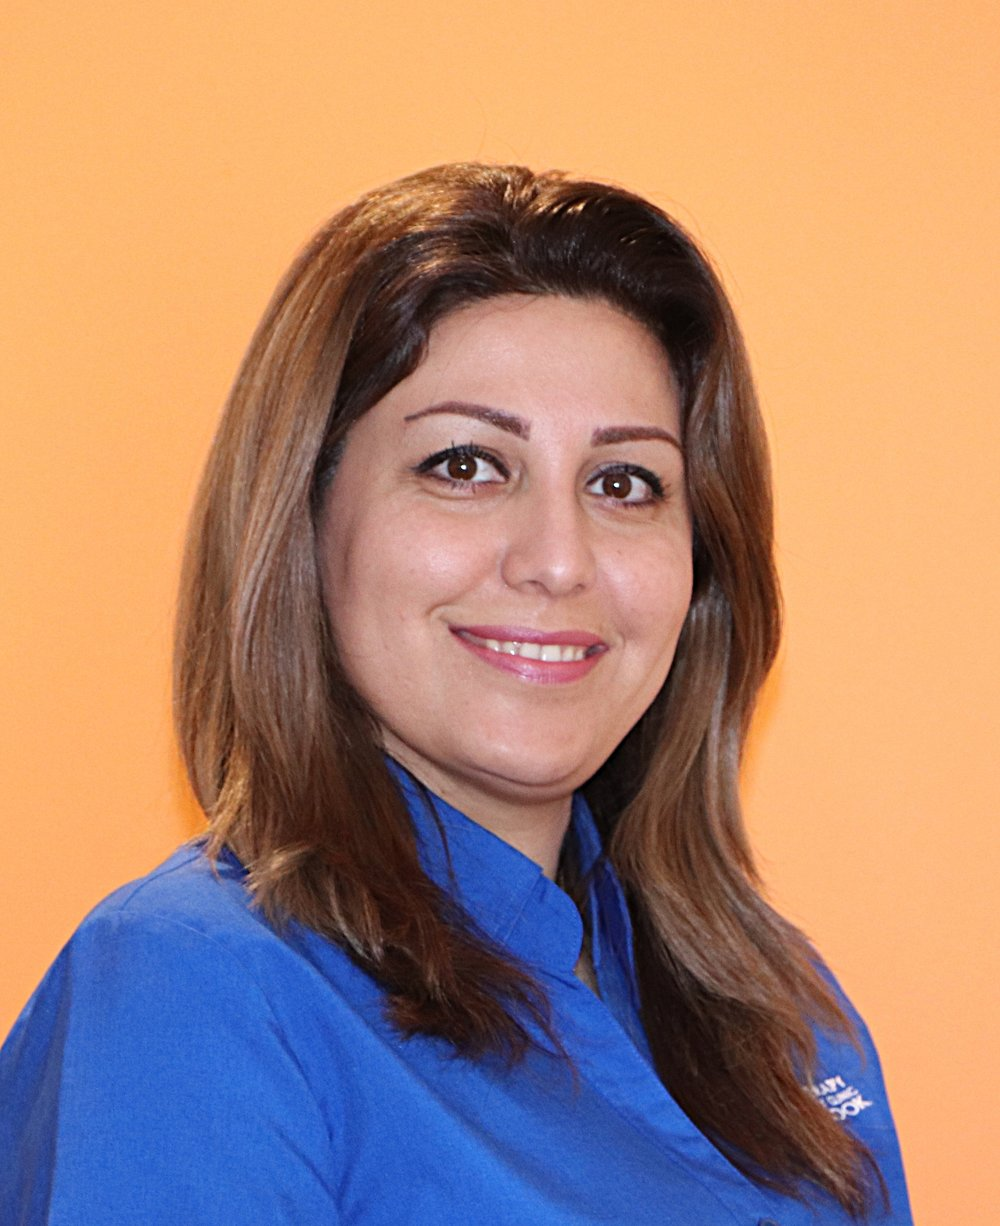 Hello! My name is Maya. - Maya has been a qualified physiotherapist since 2000, initially completing her qualification in Tehran and then re-qualifying in Australia in 2006. As well as physiotherapy, Maya also has qualifications as a chiropractor and natropathy.She has a keen interest in pain management, mobility improvement and hands-on therapy with exercise focused management of sporting injuries.You can book an appointment with Maya on:Monday 8am - 7pmWednesday 2pm - 7pmThursday 8am - 12pmFriday 2pm - 6pmSaturday 8am - 12pm